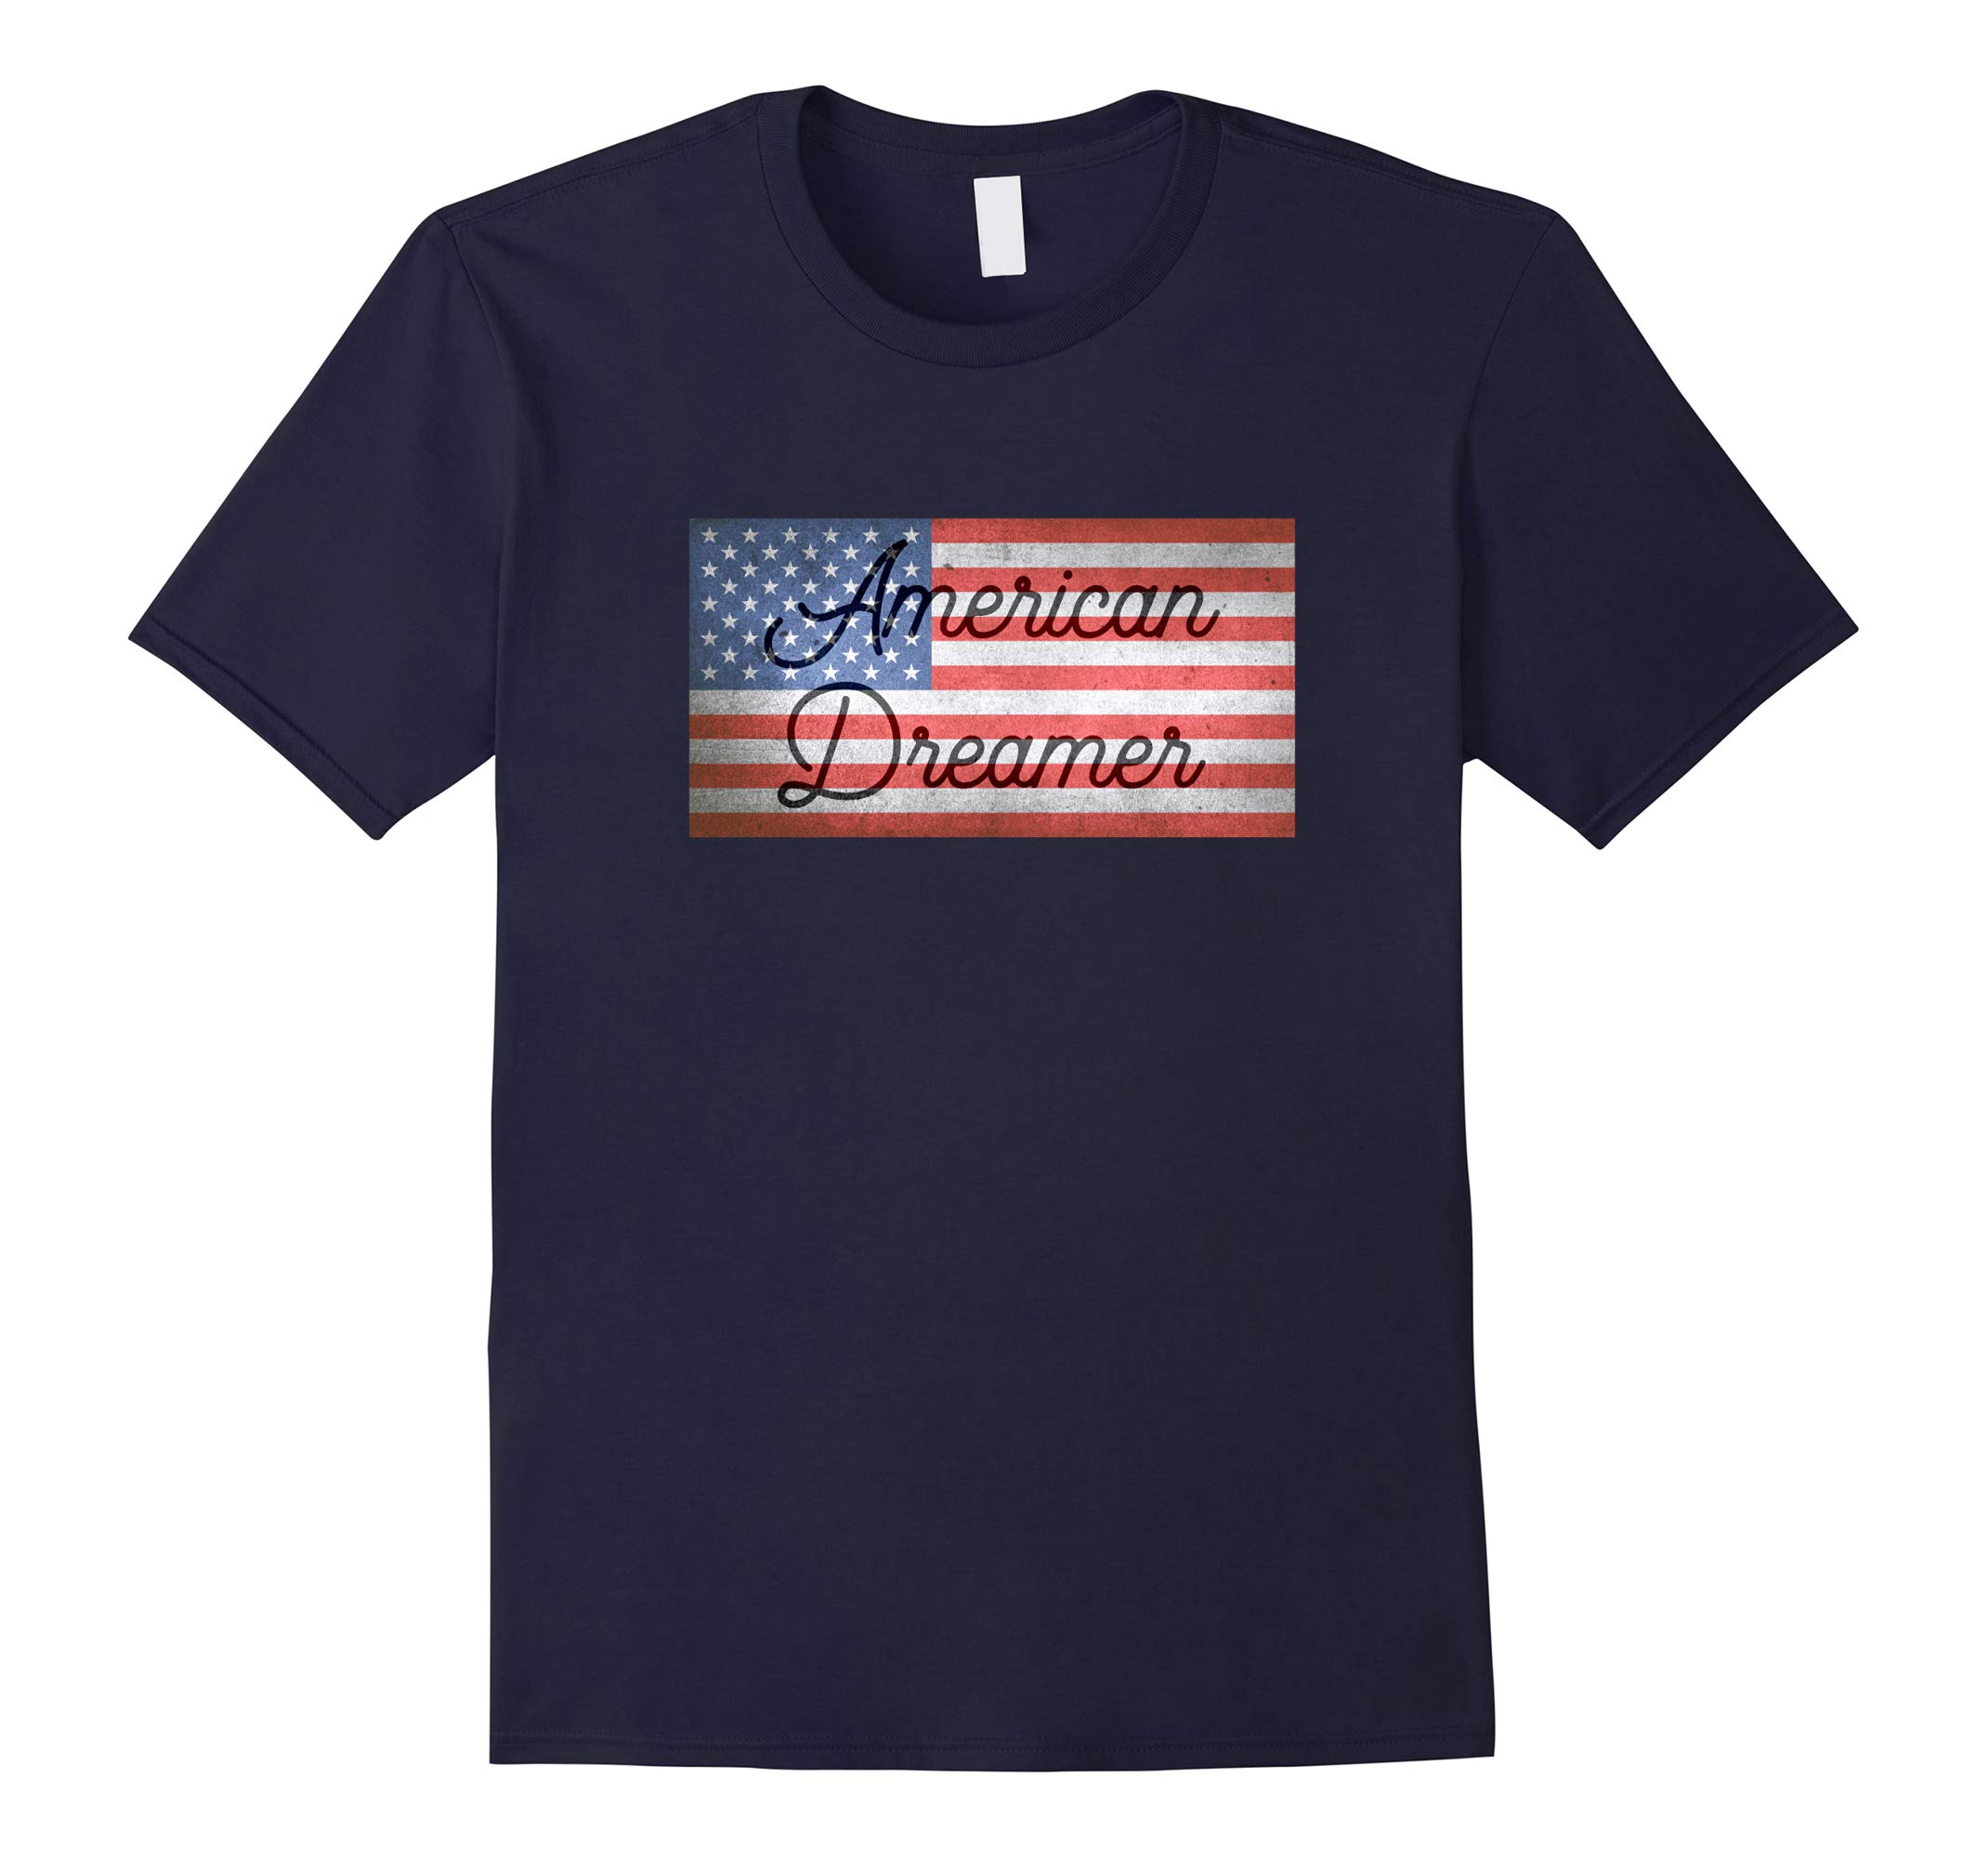 American Dreamer T-shirt Patriotic State of the Union Trump-RT